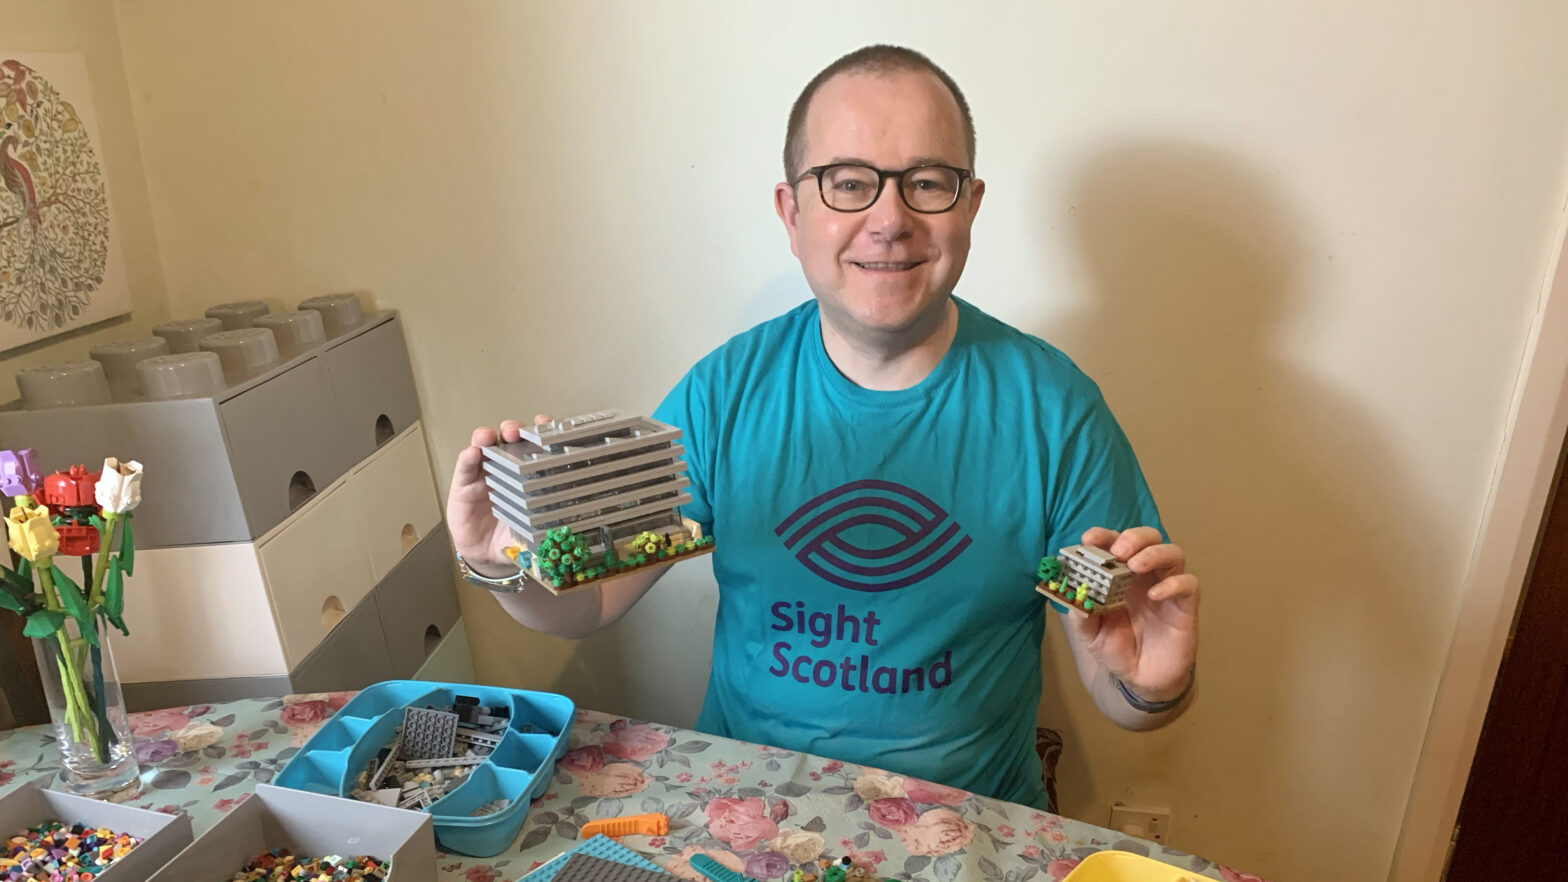 Stewart wearing his 'Sight Scotland' teal coloured t-shirt, holding up both his Main Library Lego models.